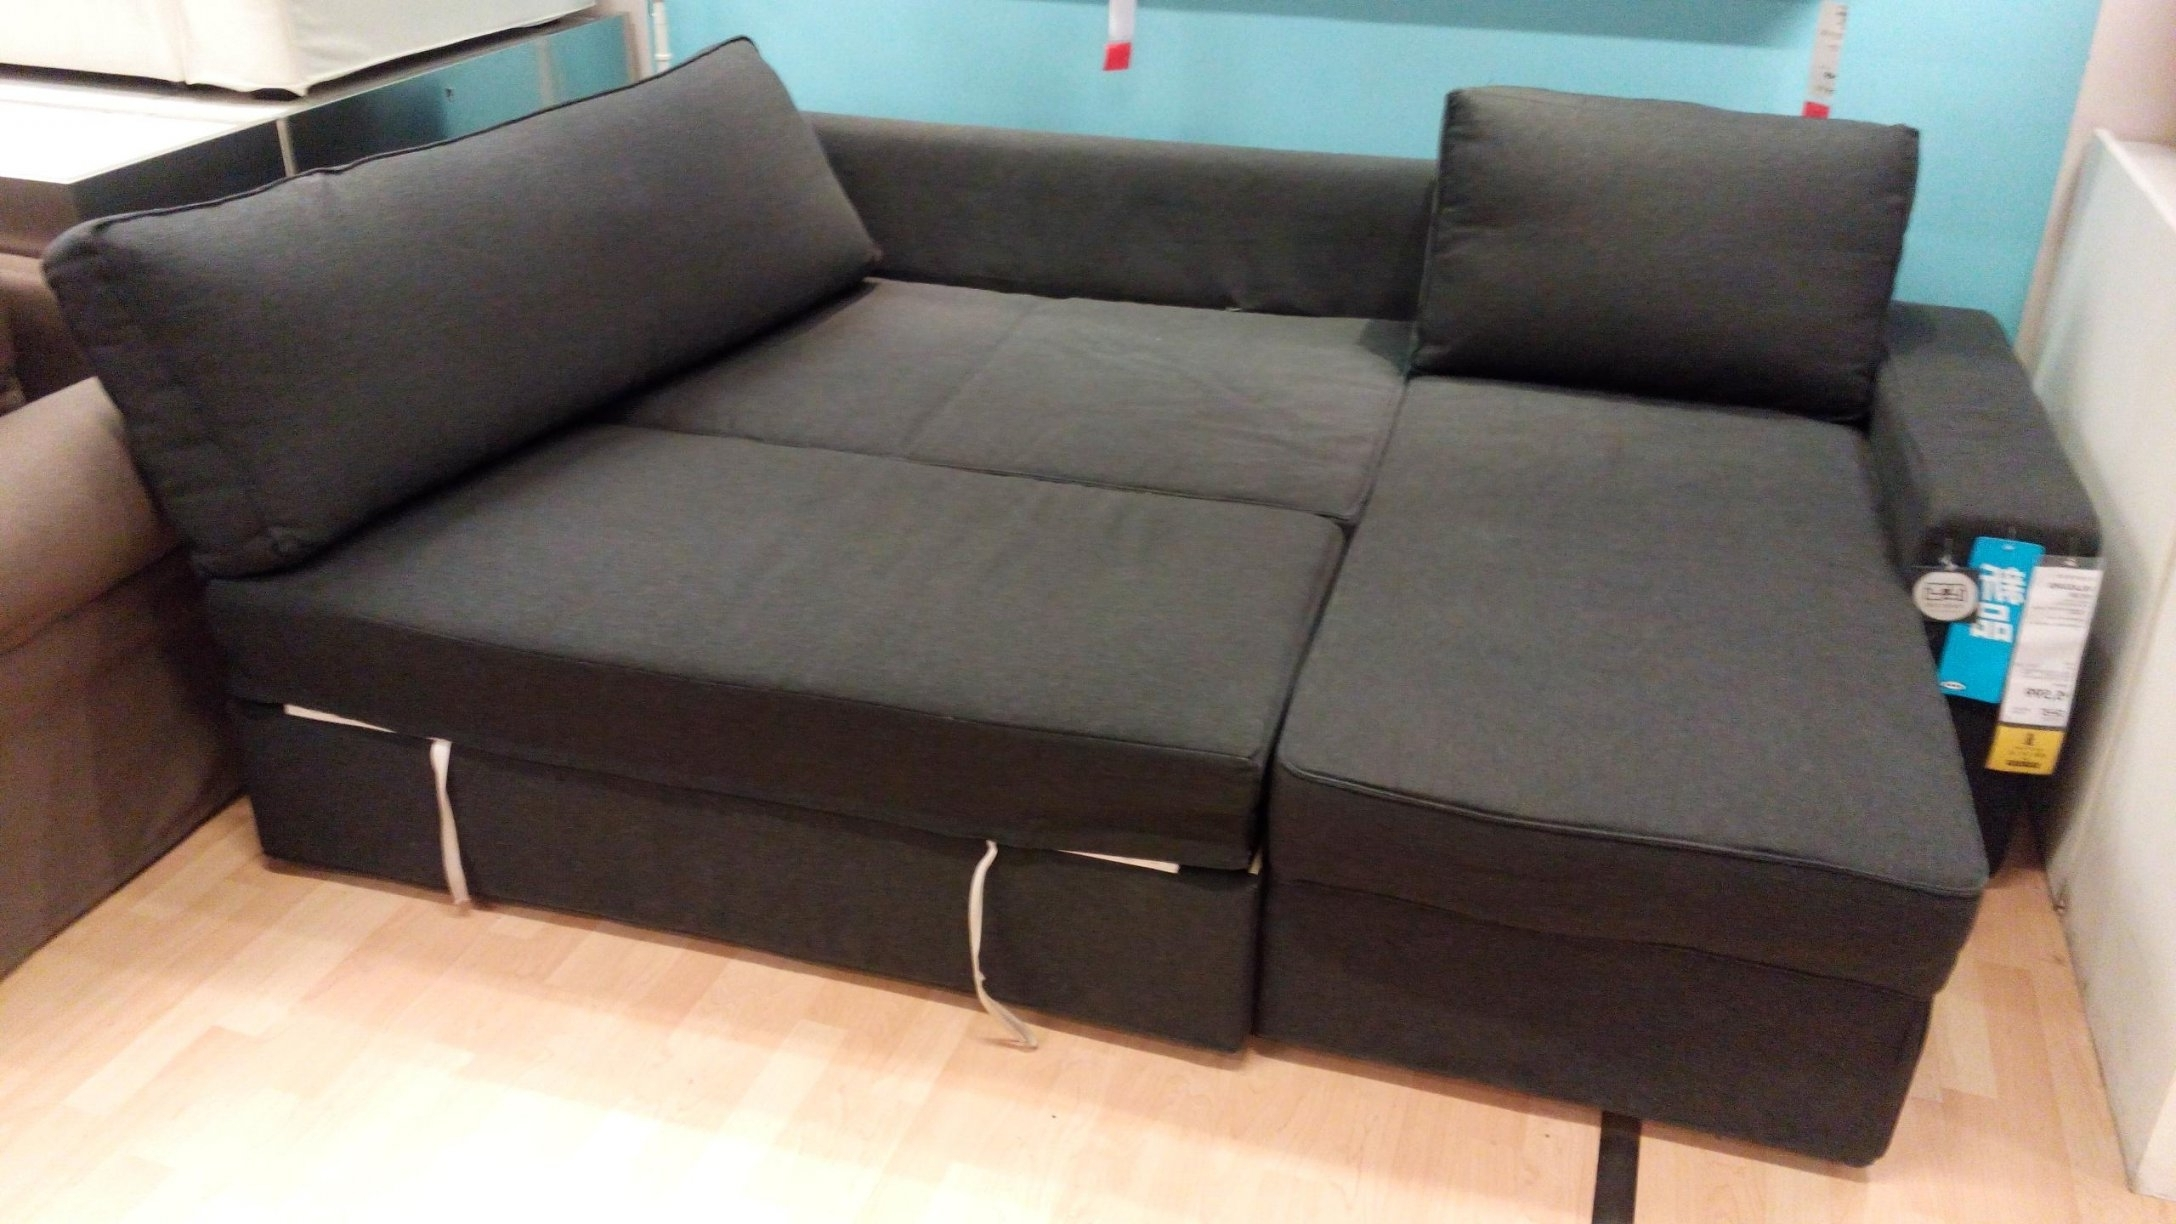 Sofa Ideas Intended For Intended For Most Recent Chaise Beds (View 4 of 15)